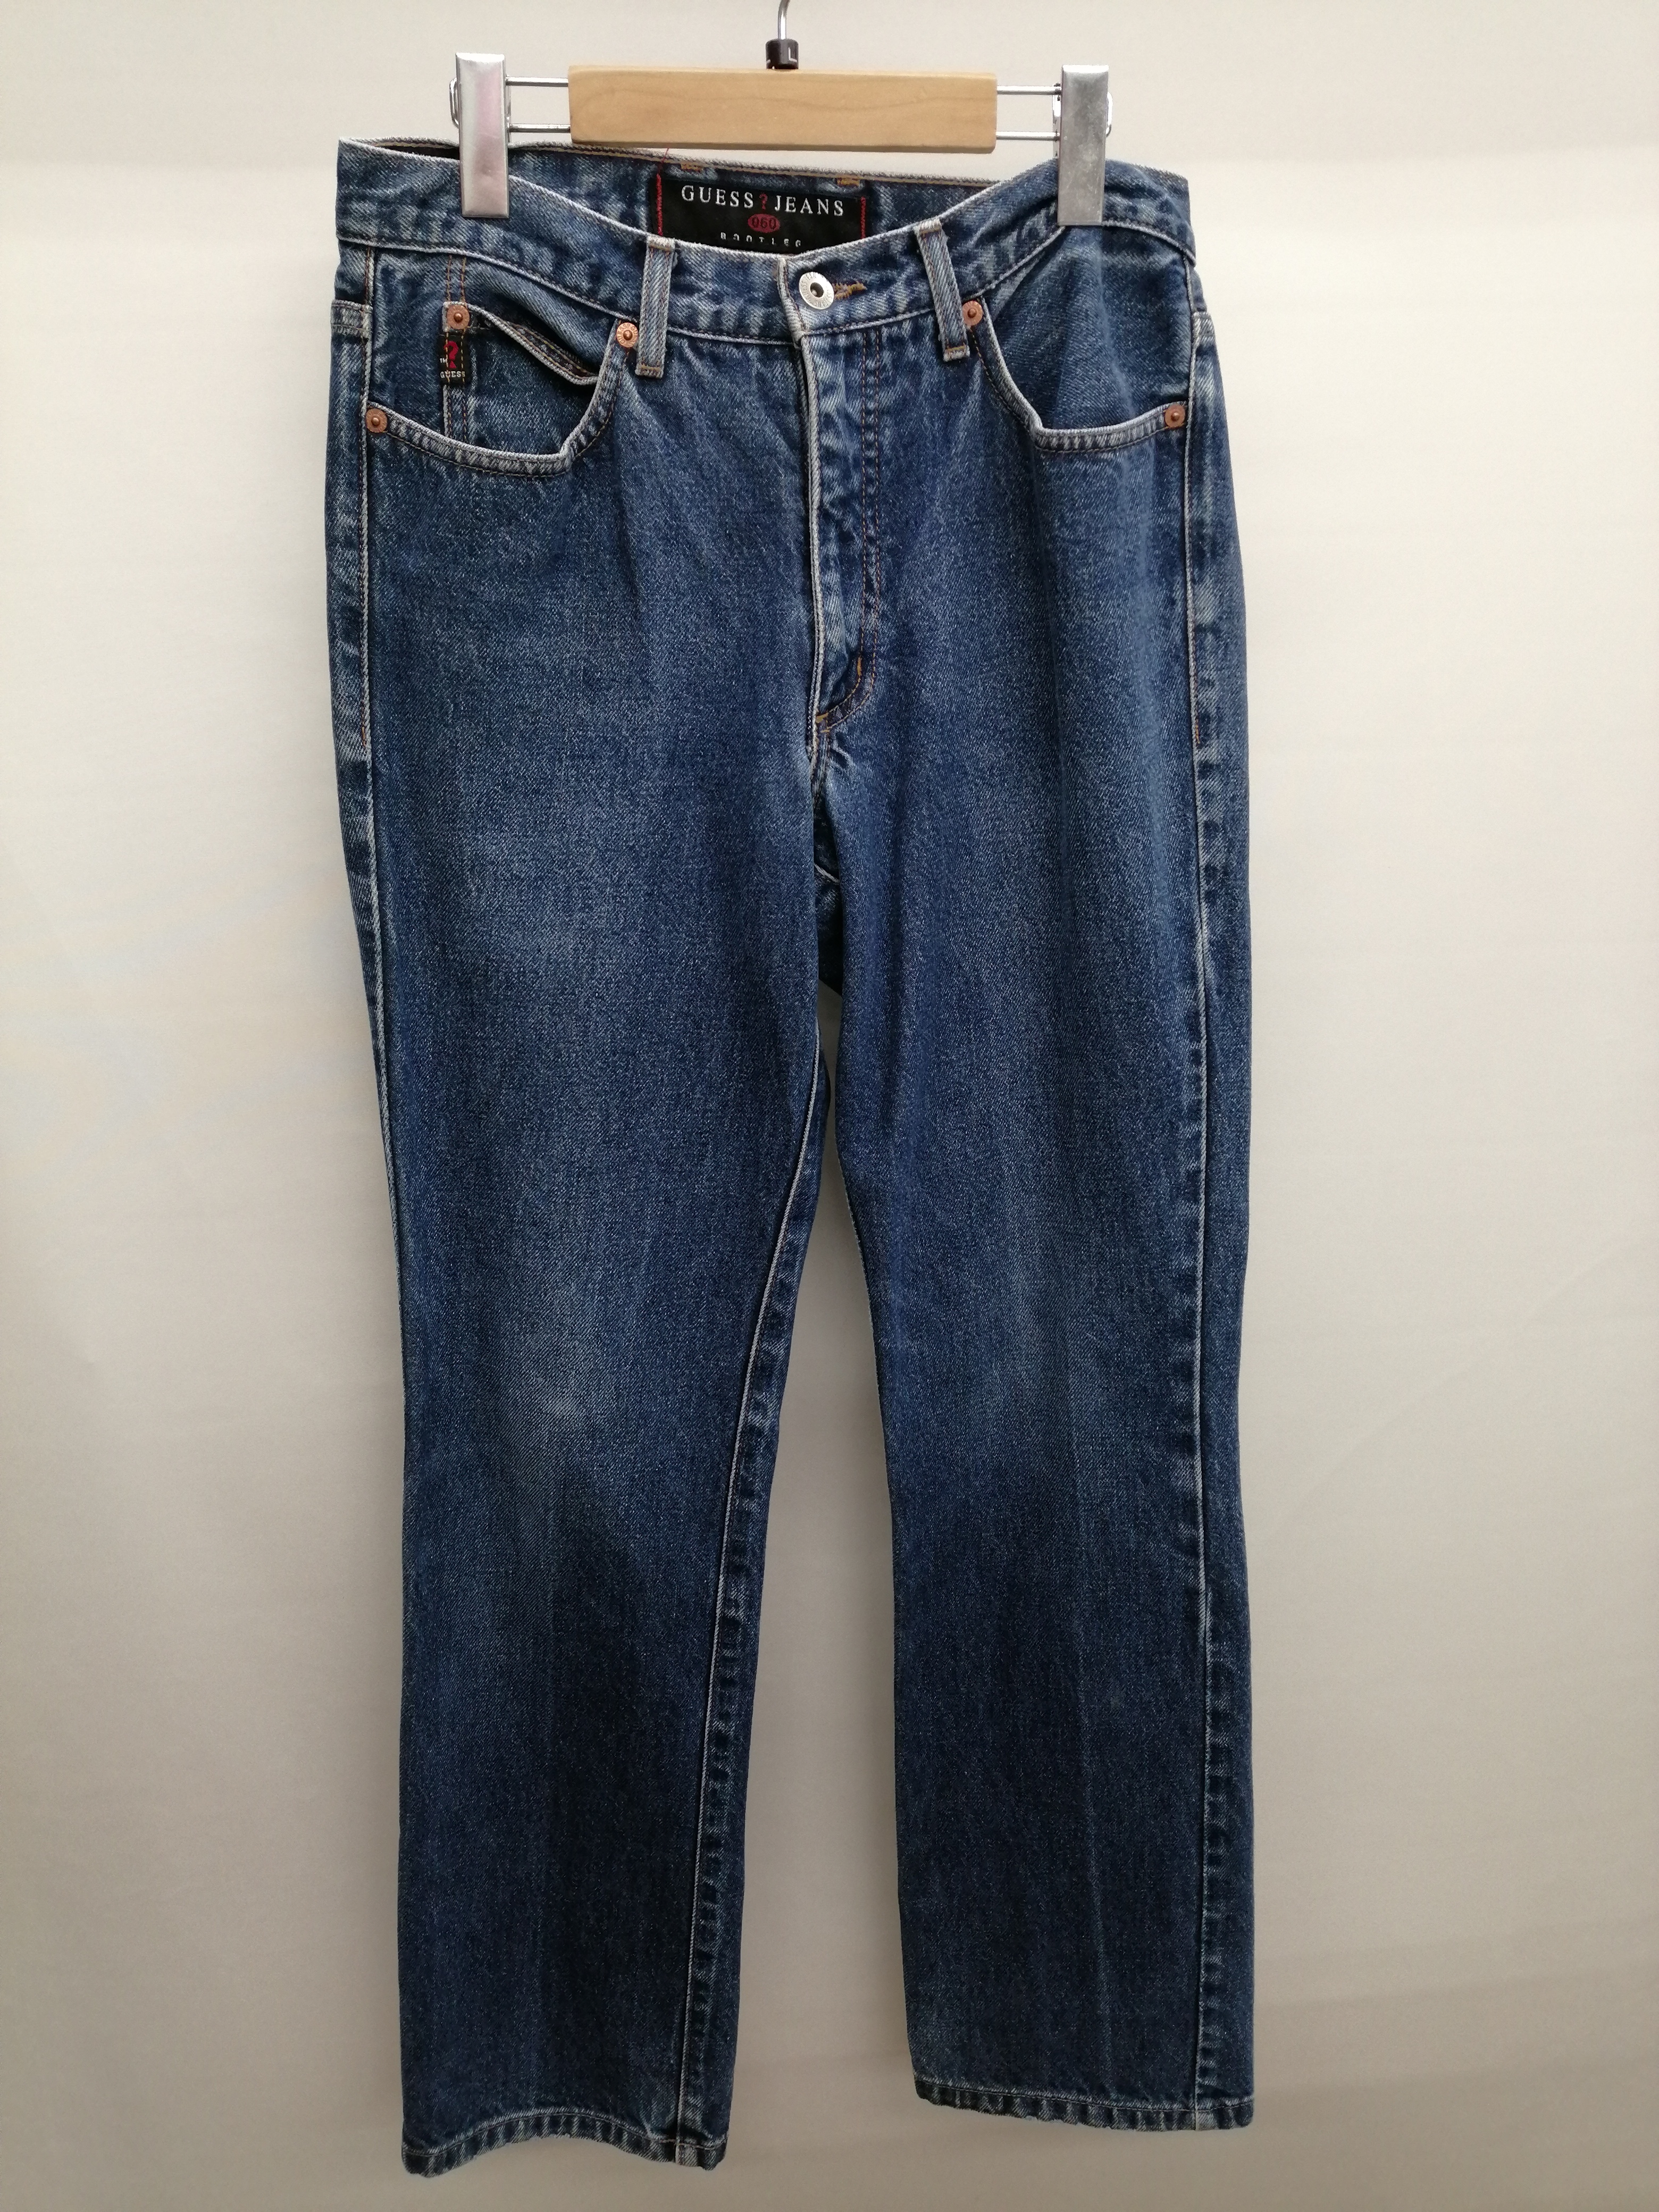 GUESS JEANS 90S BOOTLEG デニムパンツ|GUESS JEANS